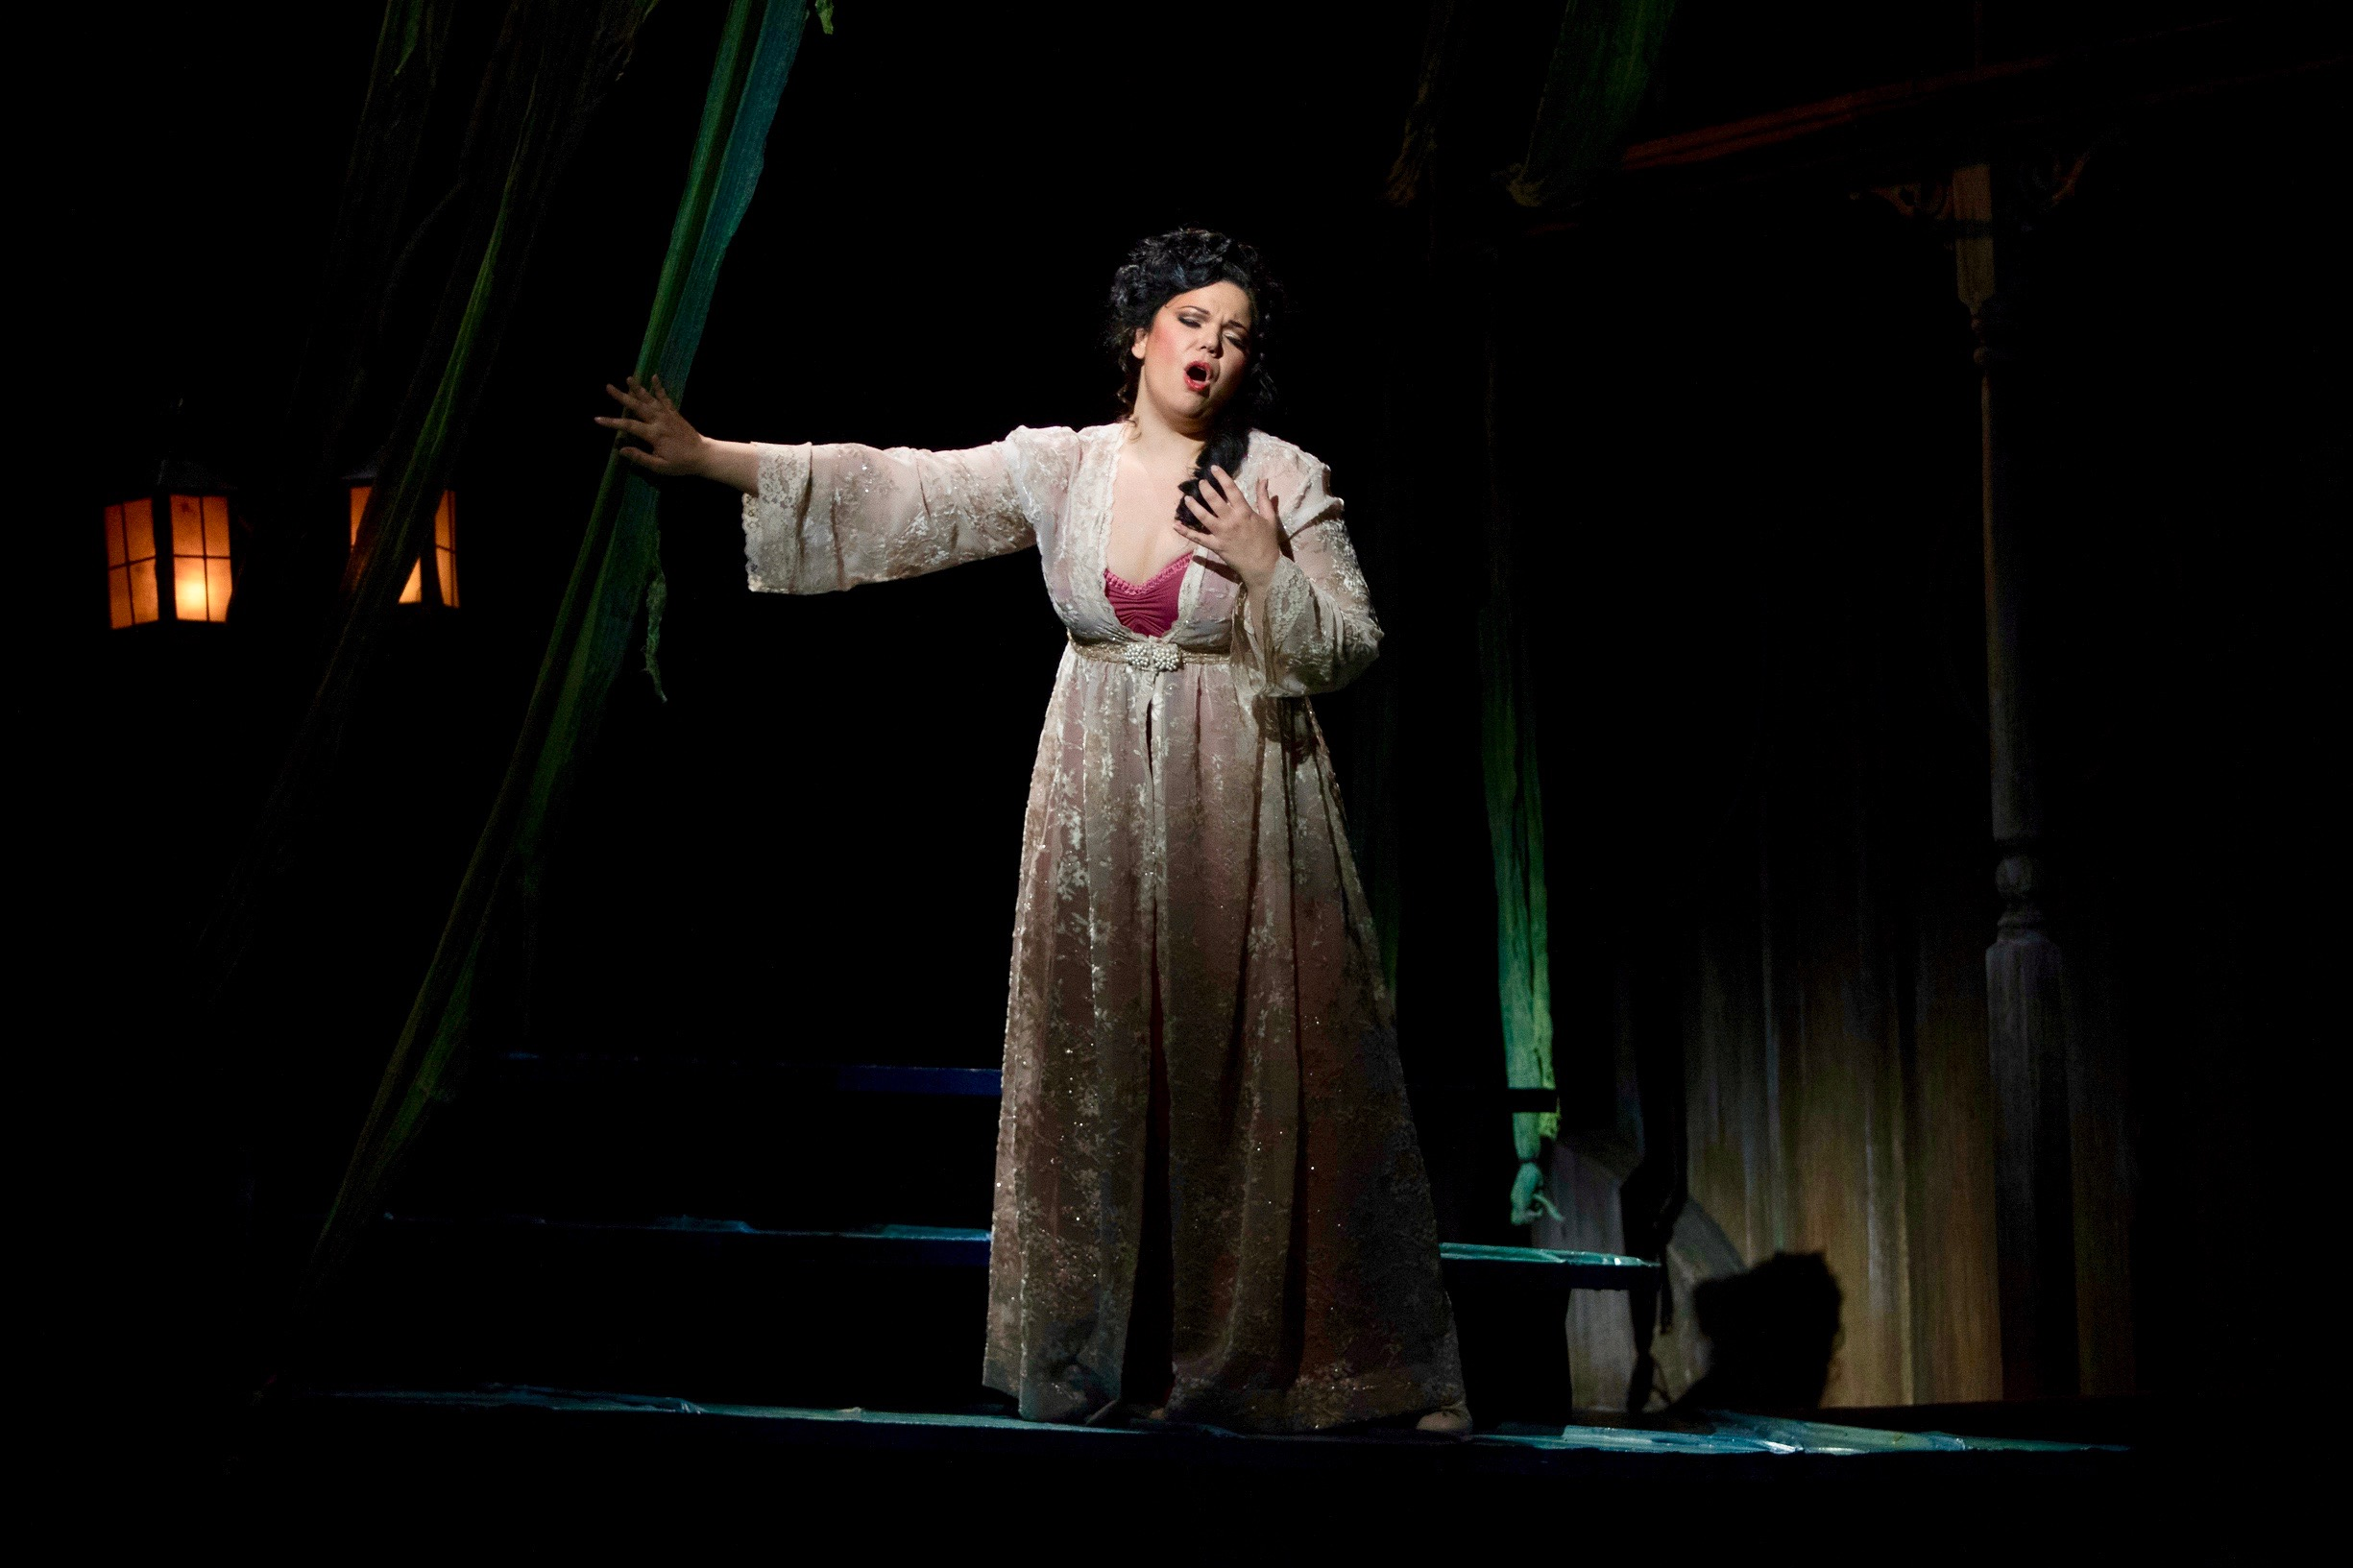 Florencia en el Amazonas at San Diego Opera - Photo by Kat Woronowicz